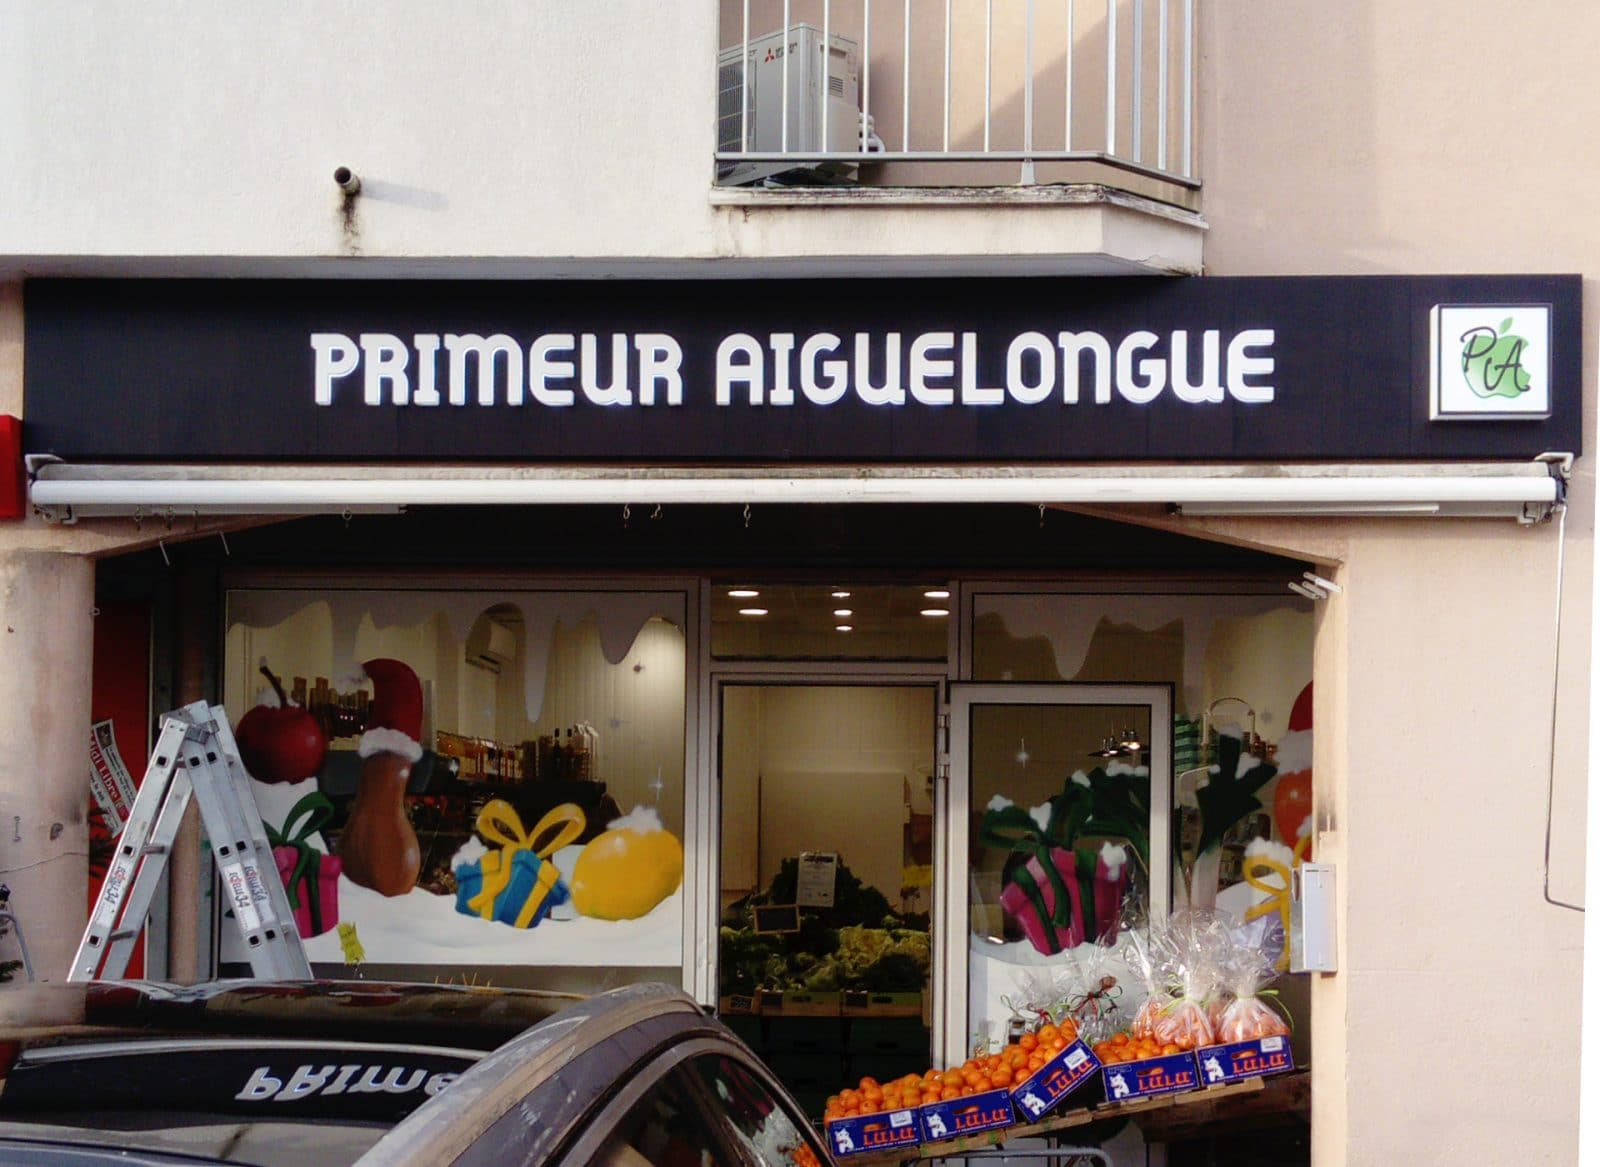 Primeur Aiguelongue